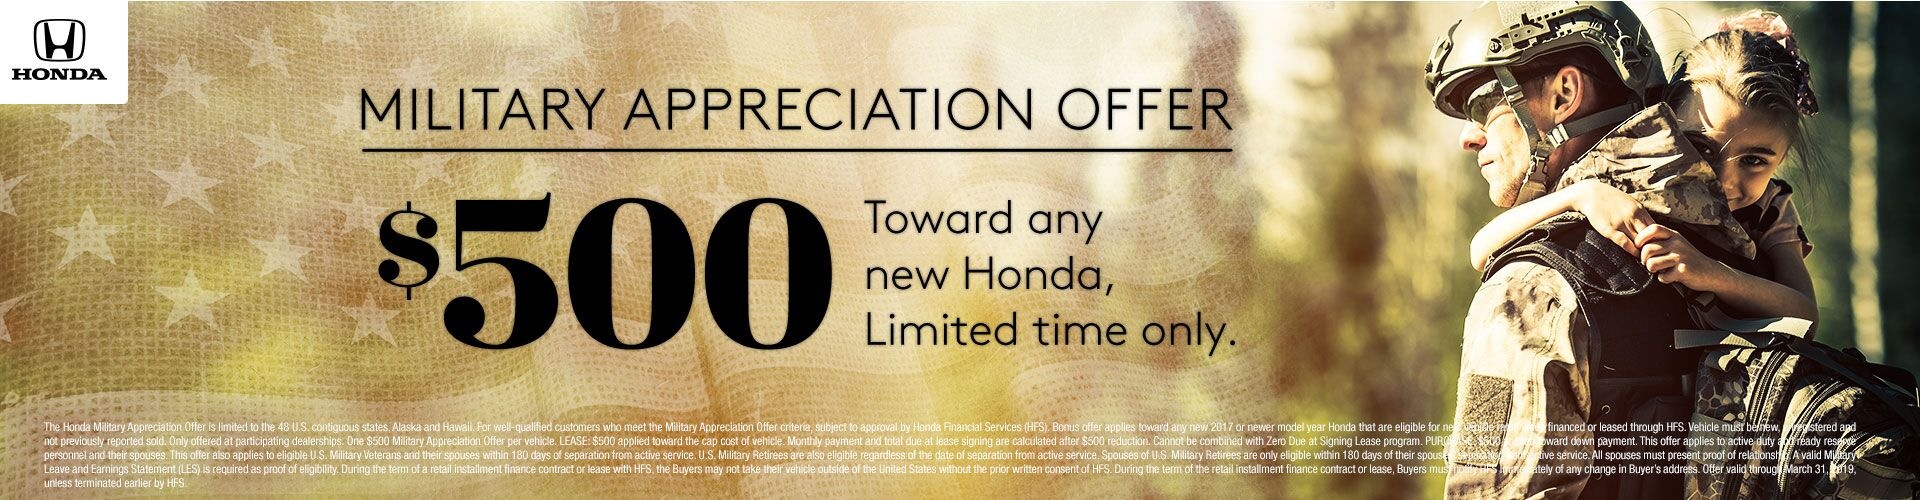 Honda Dealership Henderson NV